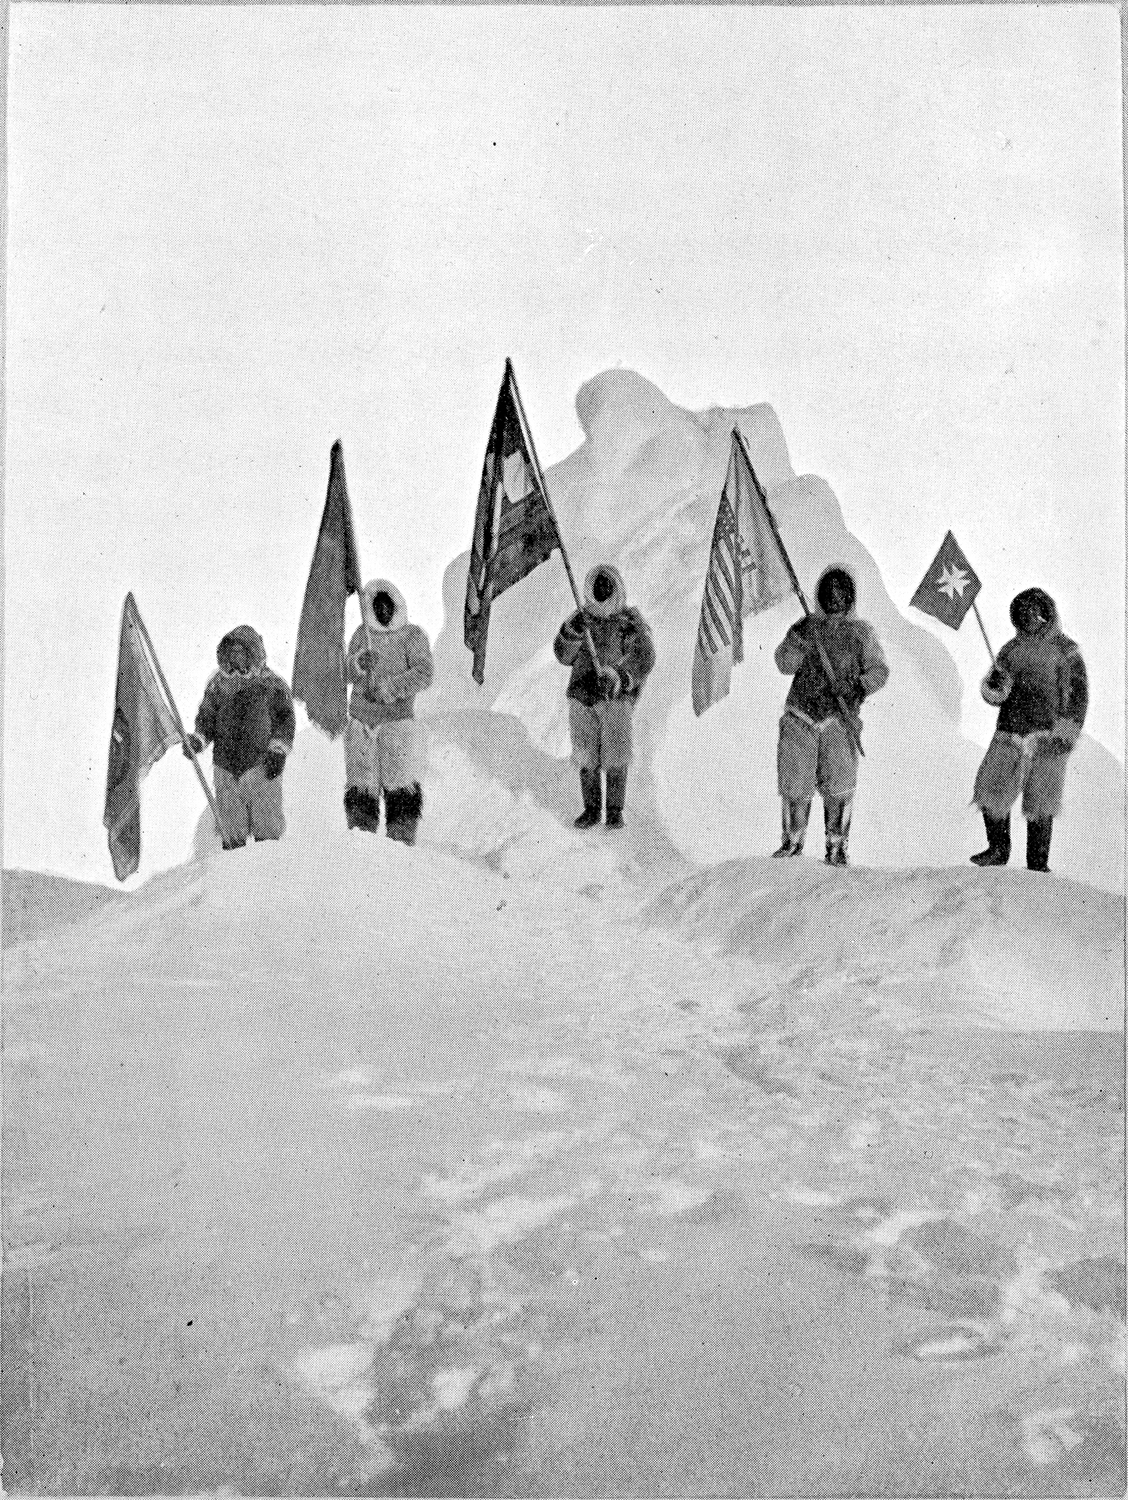 After Peary 1909   The five flags at the Pole ([1909], c1910)   After a photomechanical halftone print,  The North Pole  by Robert E. Peary (London: Hodder & Stoughton 1910)